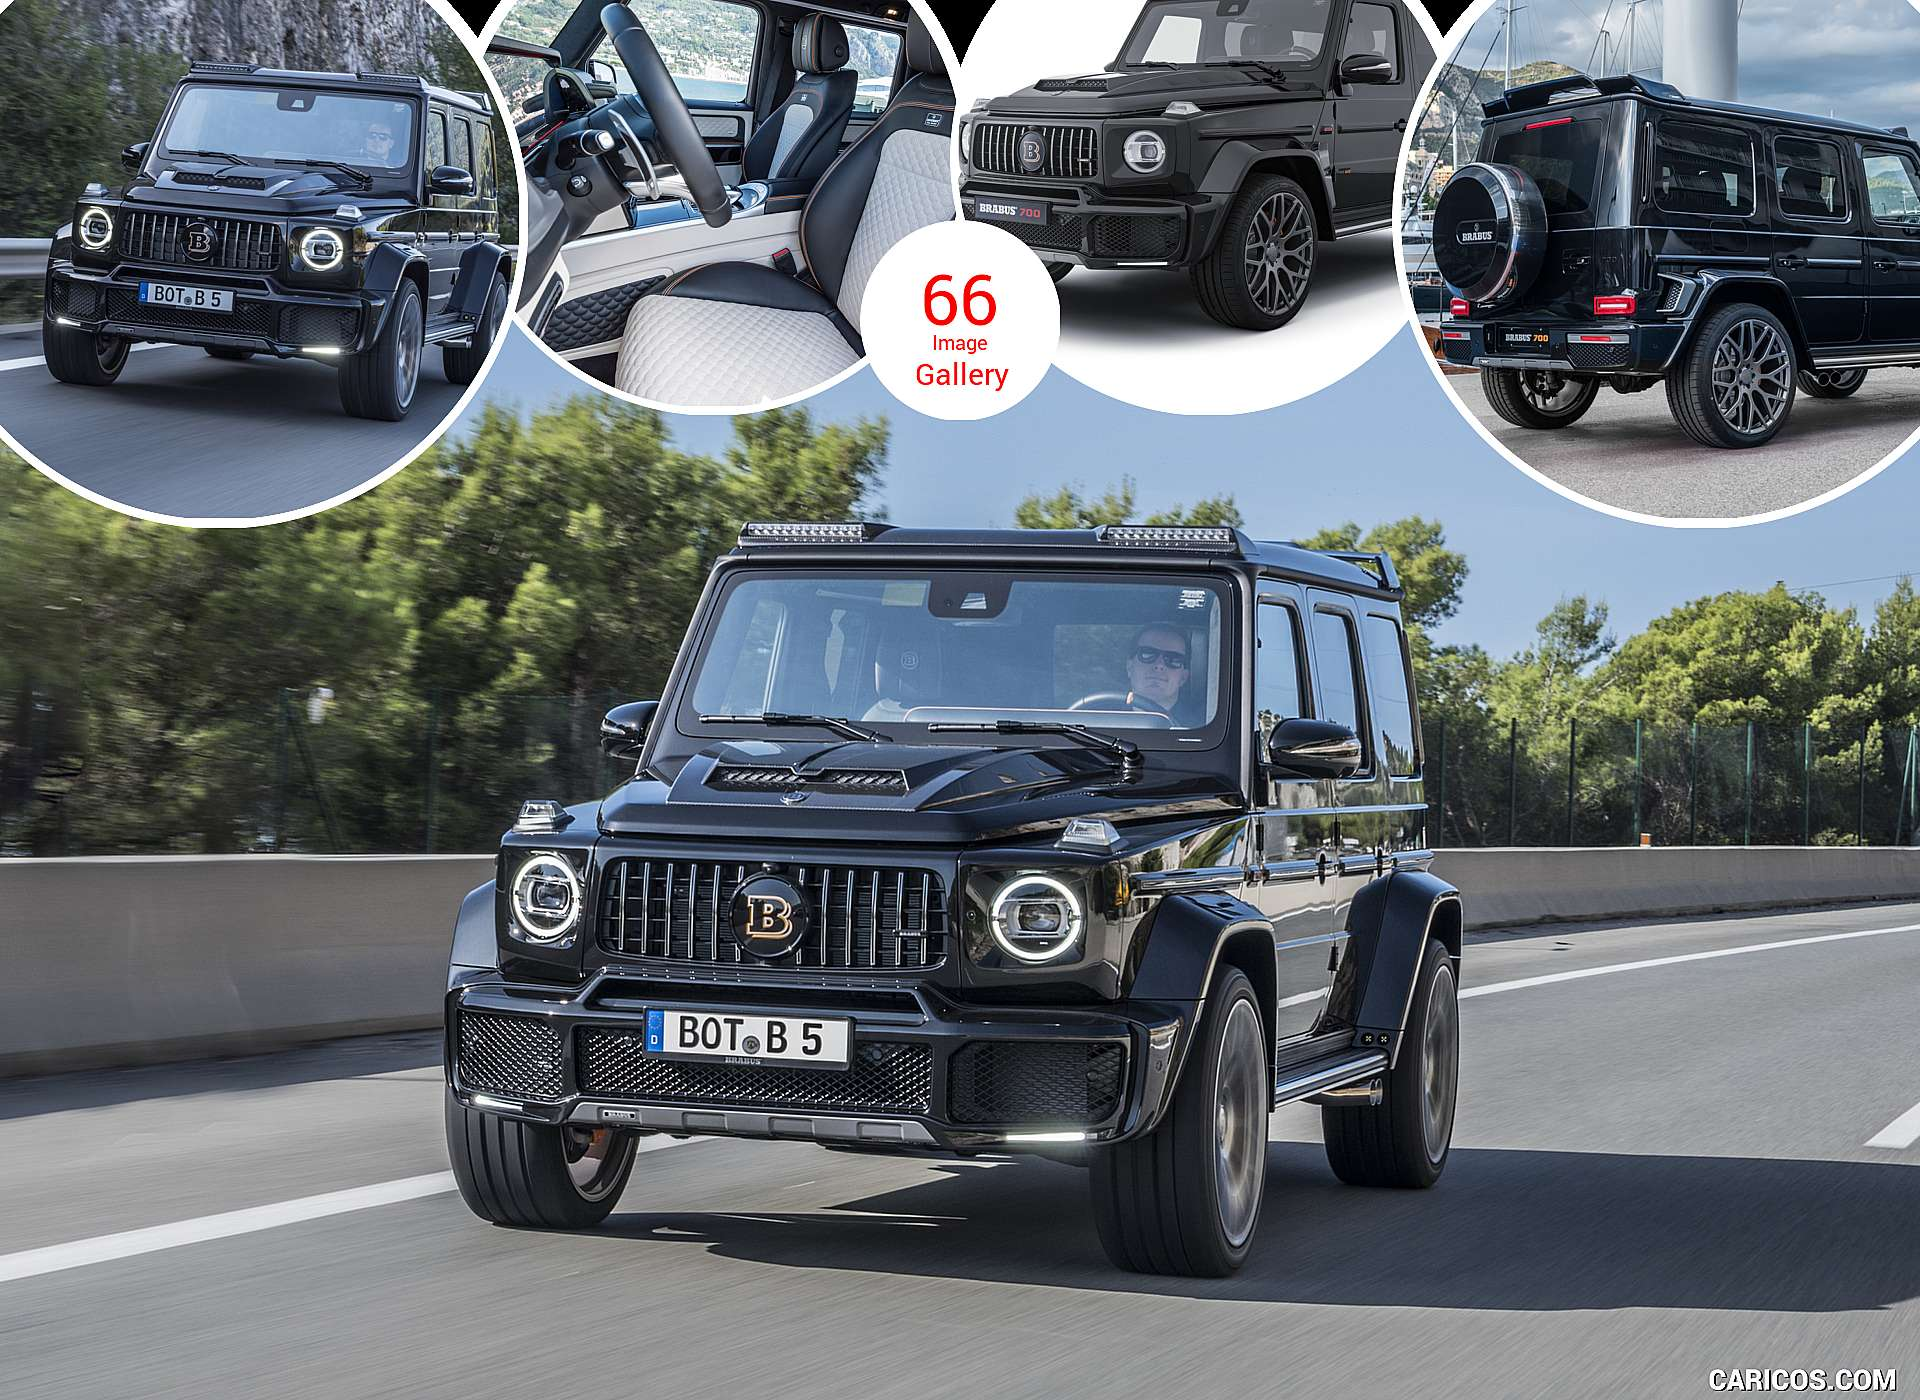 2019 BRABUS 700 Widestar based on Mercedes-AMG G 63